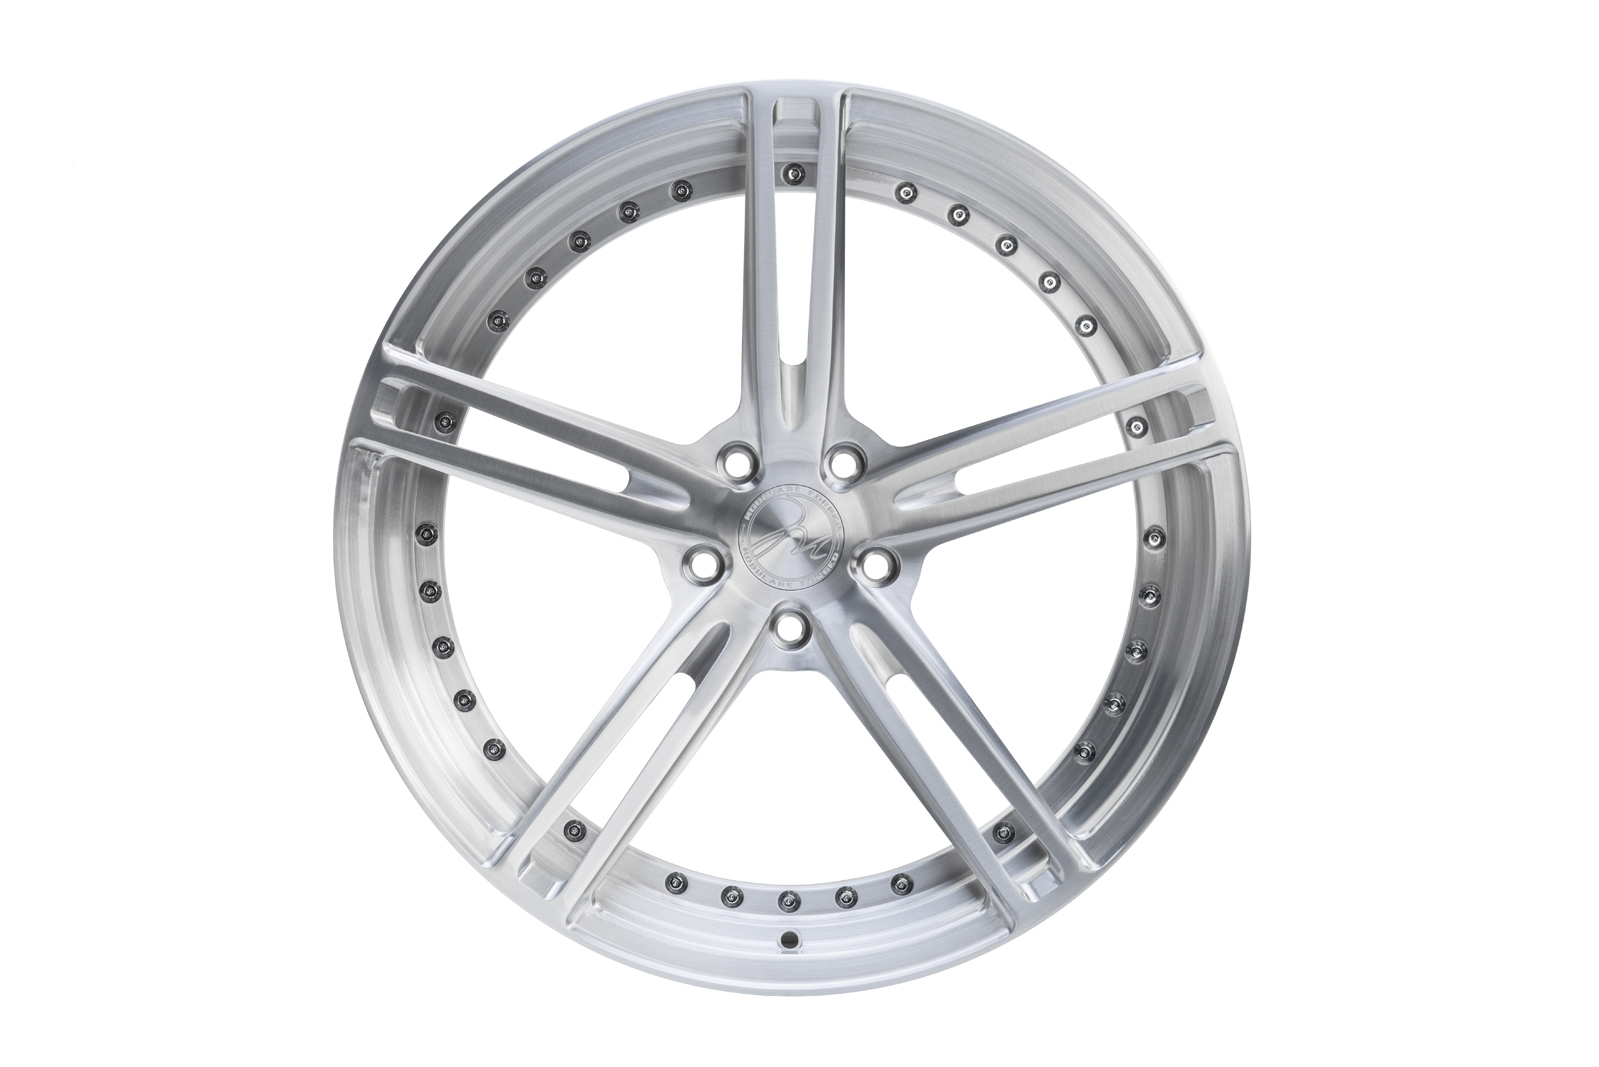 Modulare D35 forged wheels